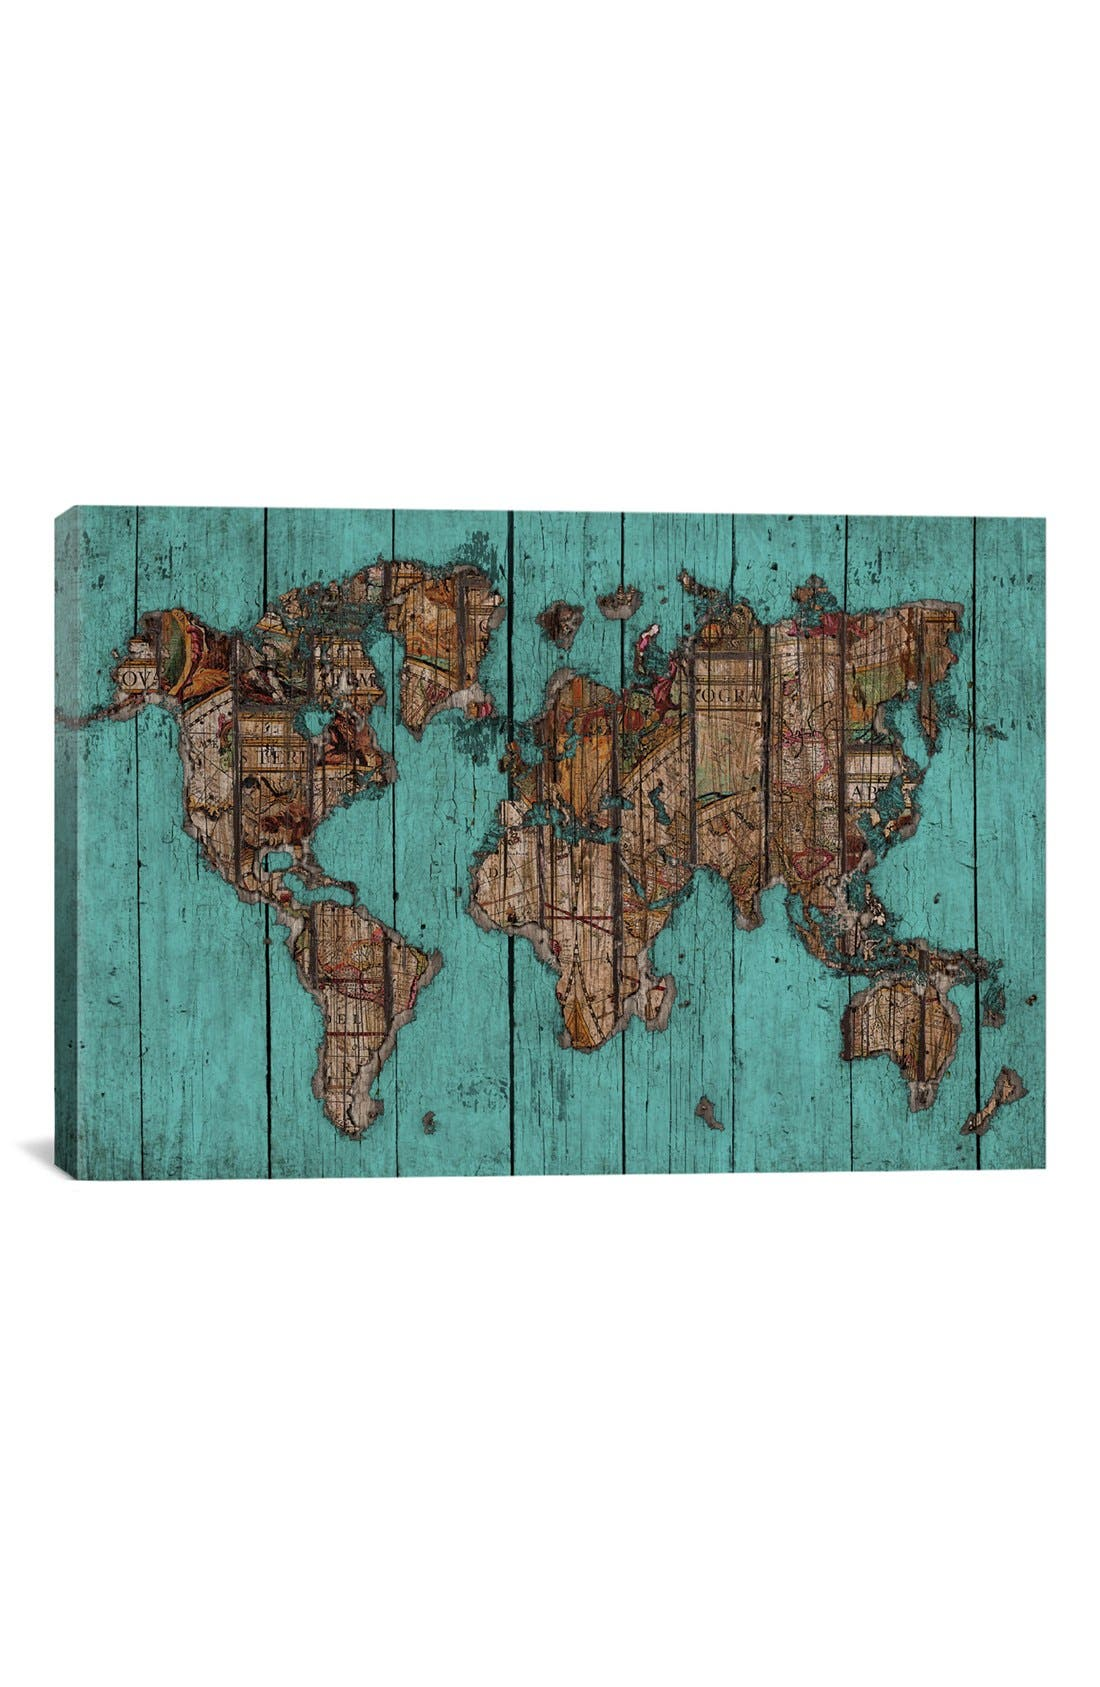 'Wood Map #2 - Diego Tirigall' Giclée Print Canvas Art,                             Main thumbnail 1, color,                             Blue/ Green